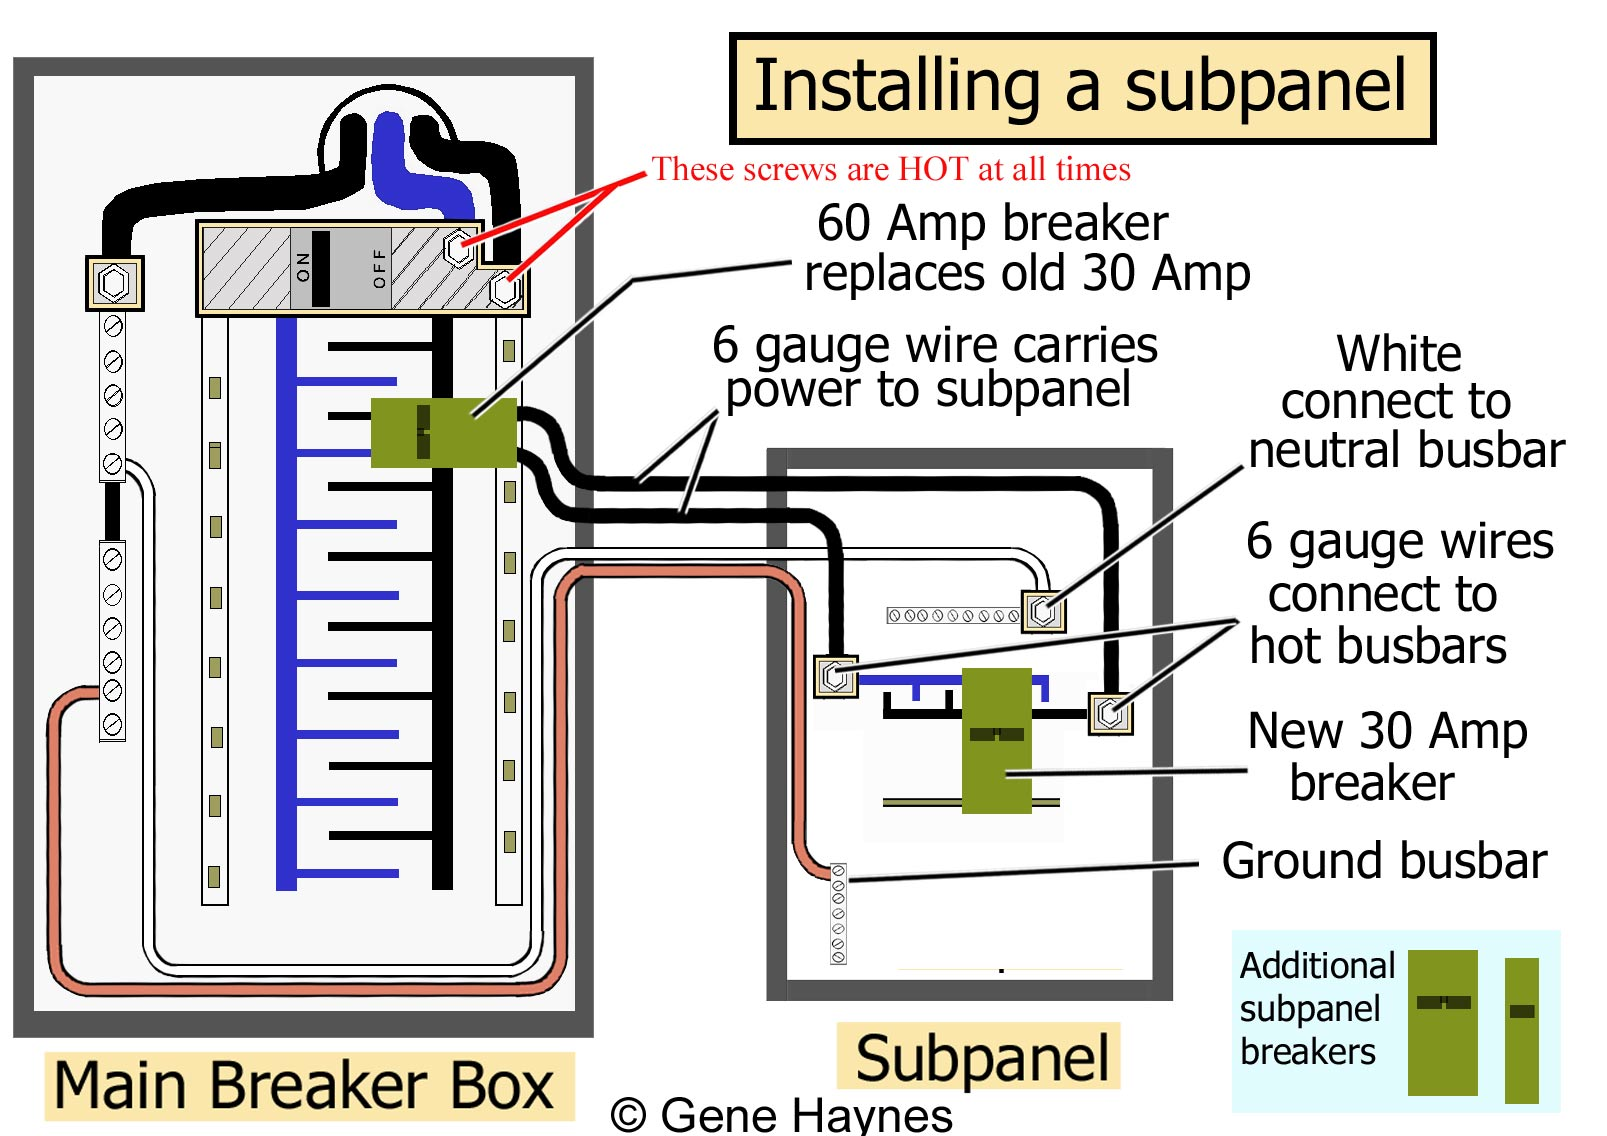 How to install a subpanel how to install main lug 1 60 150 amp breaker replaces any 240 breaker in main box near top of box greentooth Images